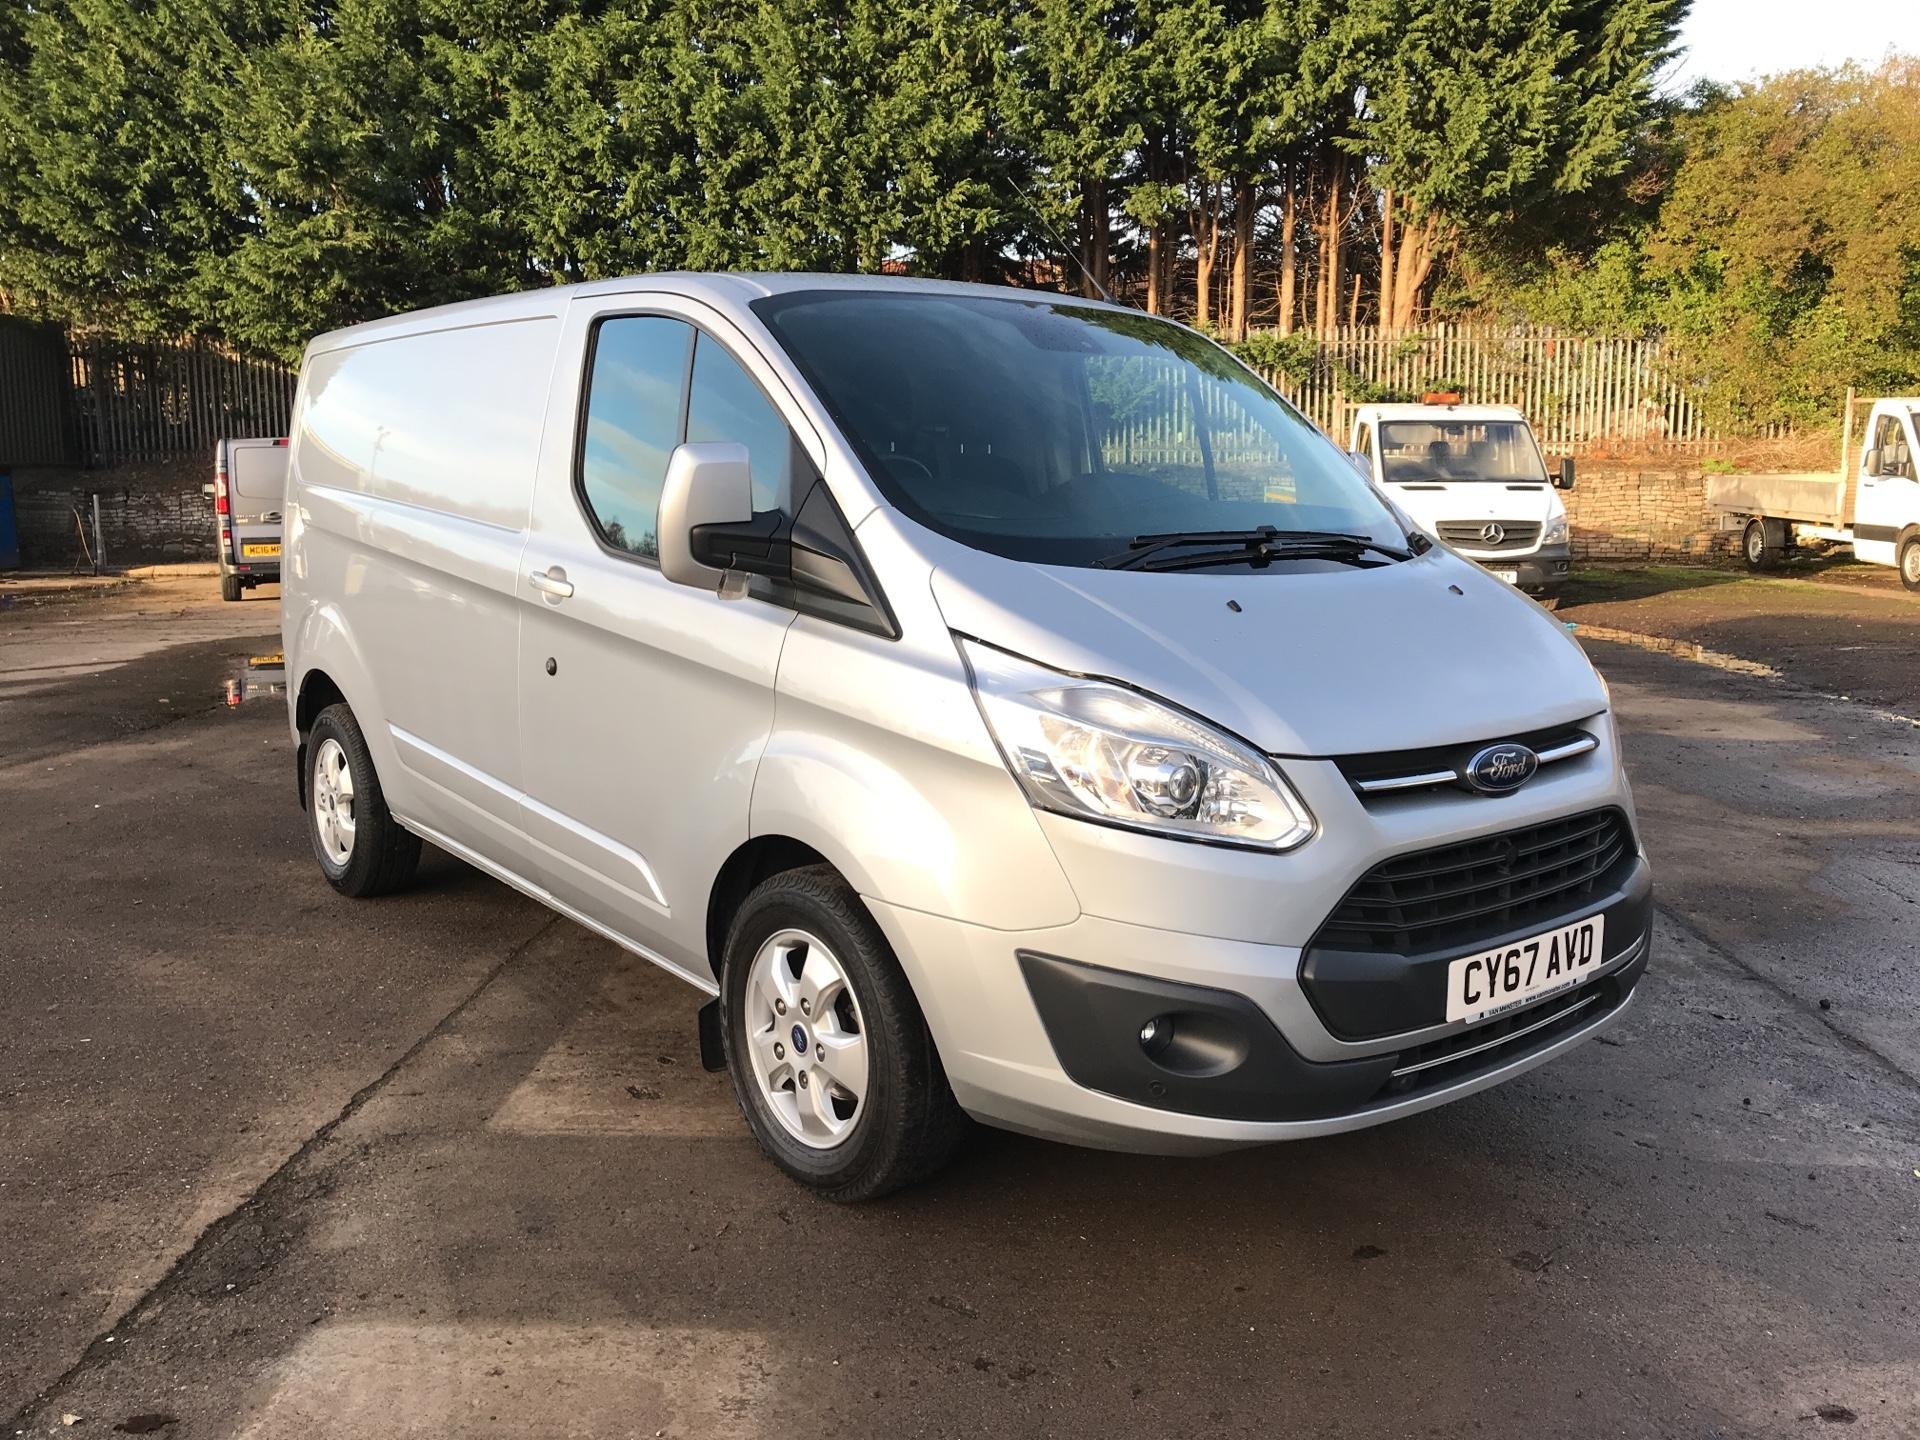 2017 Ford Transit Custom 270 L1 DIESEL FWD 2.0 TDCI 130PS LOW ROOF LIMITED VAN EURO 6 (CY67AVD)